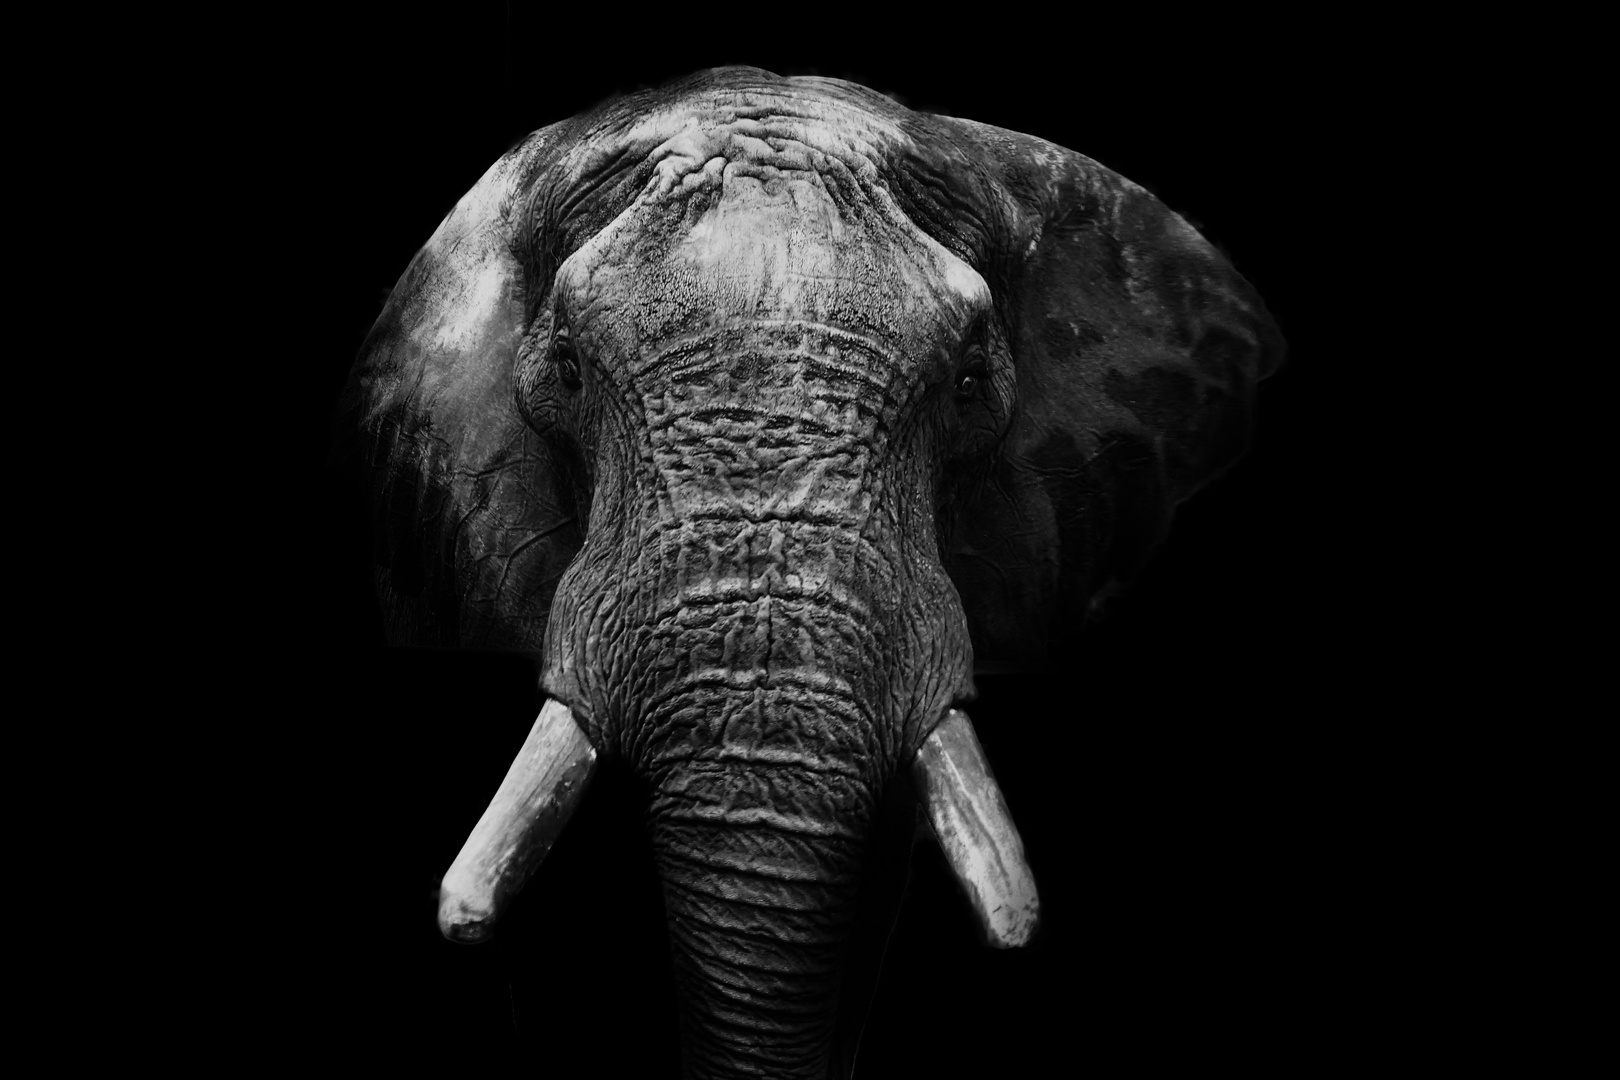 elefant in schwarz wei foto bild tiere elefant b w bilder auf fotocommunity. Black Bedroom Furniture Sets. Home Design Ideas